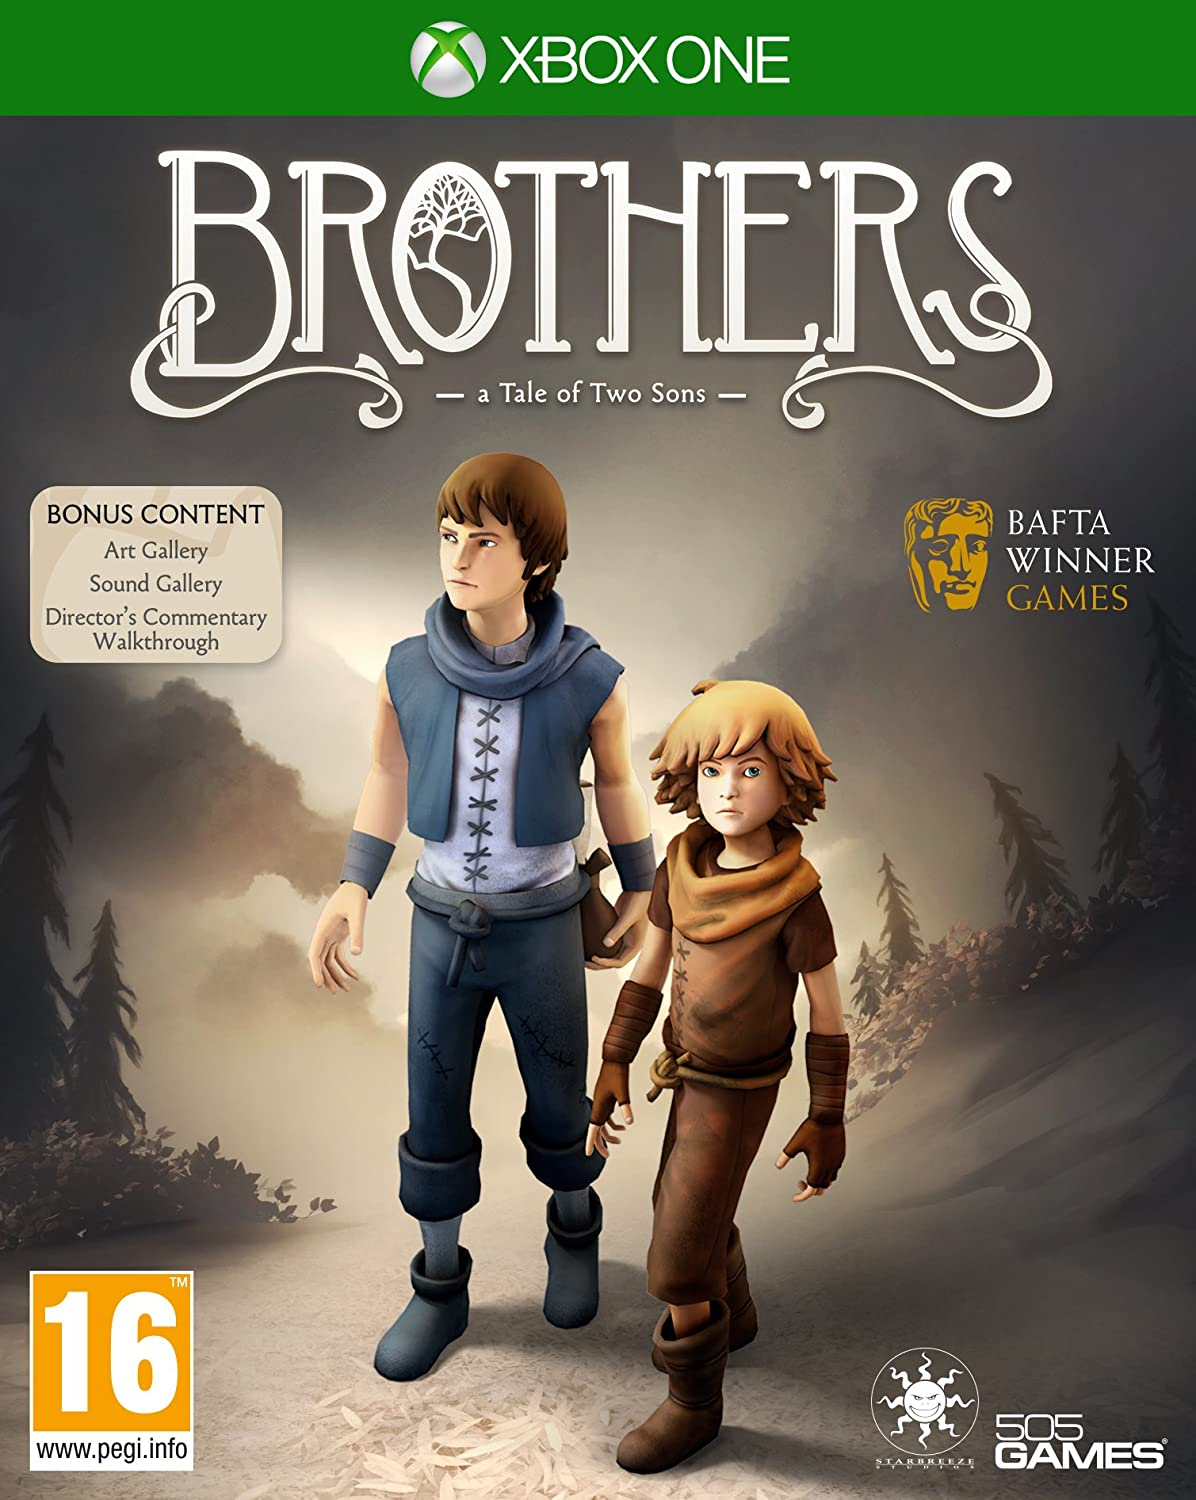 Brothers, A Tale of Two Sons Xbox One: Amazon.de: Elektronik